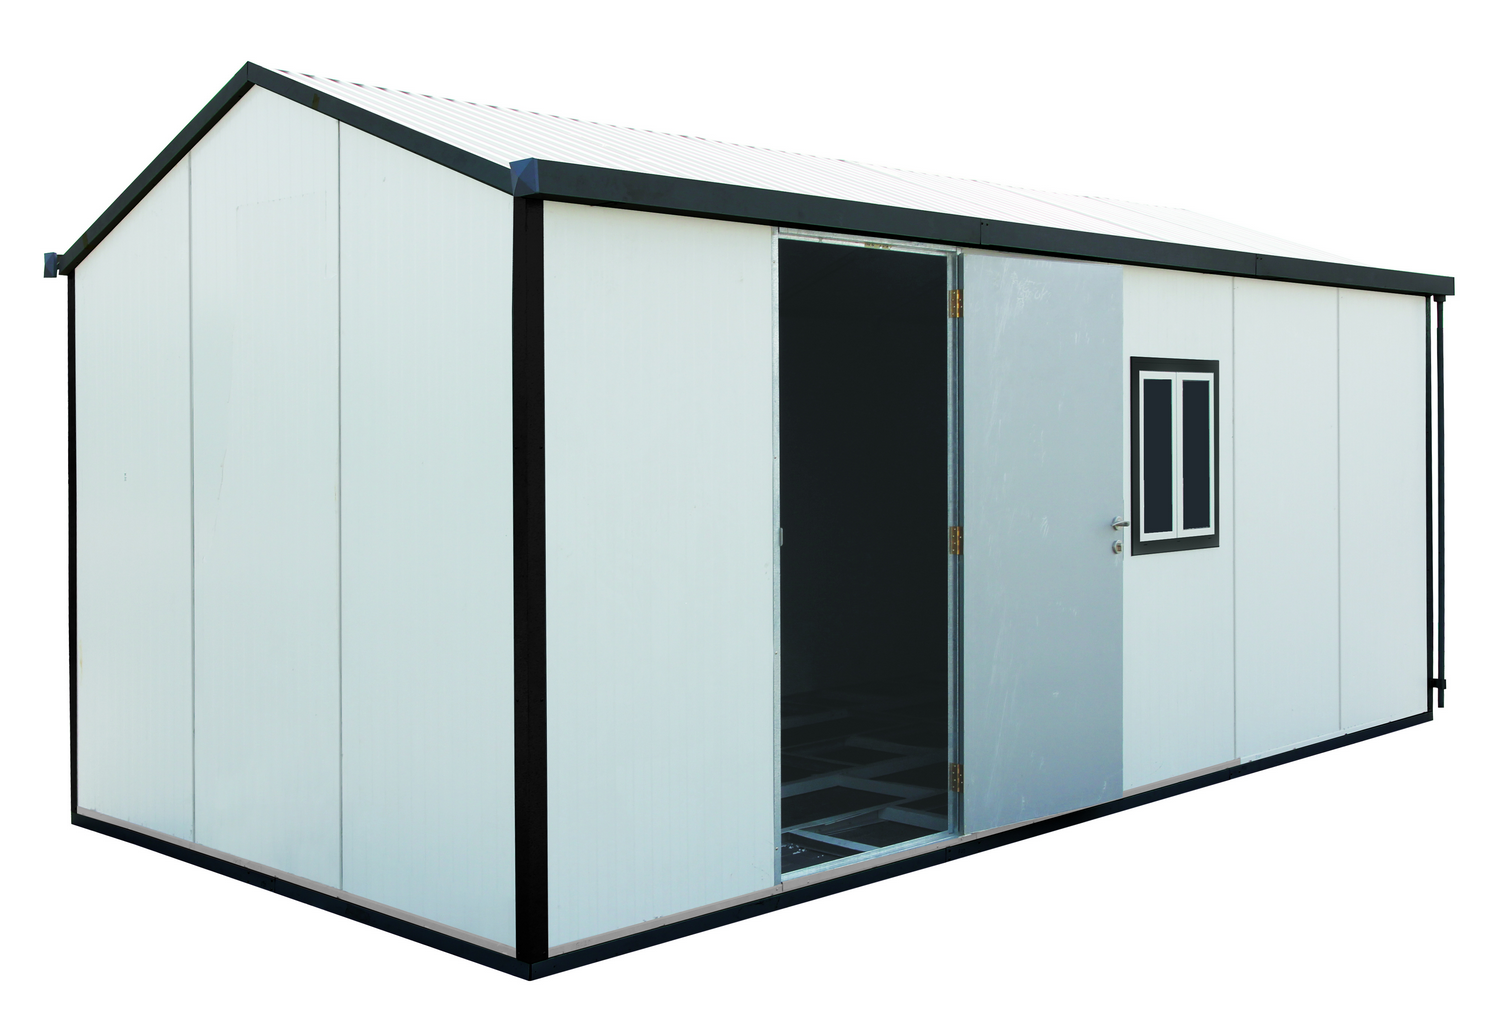 Duramax 30532 13.3' x 10' Gable Top Insulated Building